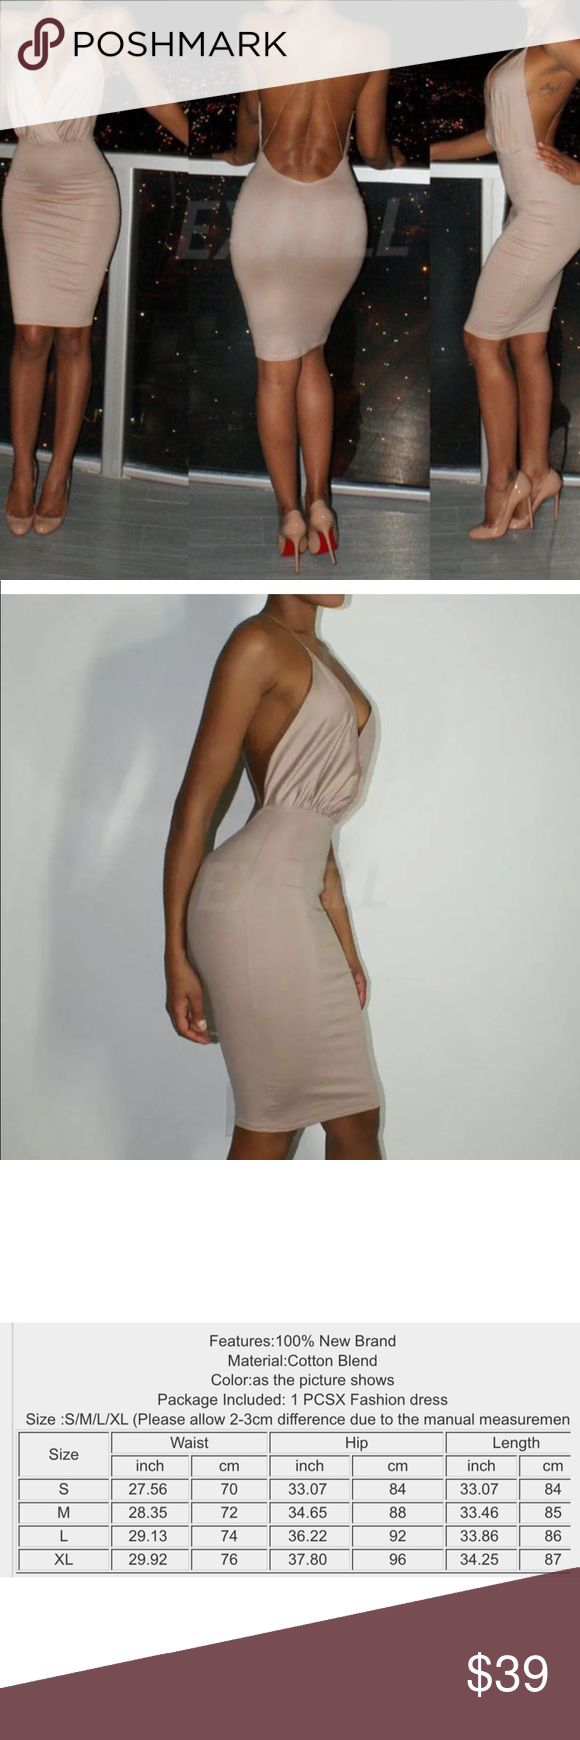 🆕Deep V-neck Bandage Backless Dress NWOT Brand new in excellent new condition. Show off your curves with this sexy deep V-neck bandage backless evening bodycon dress. Pair it with heels and you're good to go. Super soft. See measurements above. Cream color. Size Small. PRICE FIRM unless it's bundled. Boutique Dresses Mini